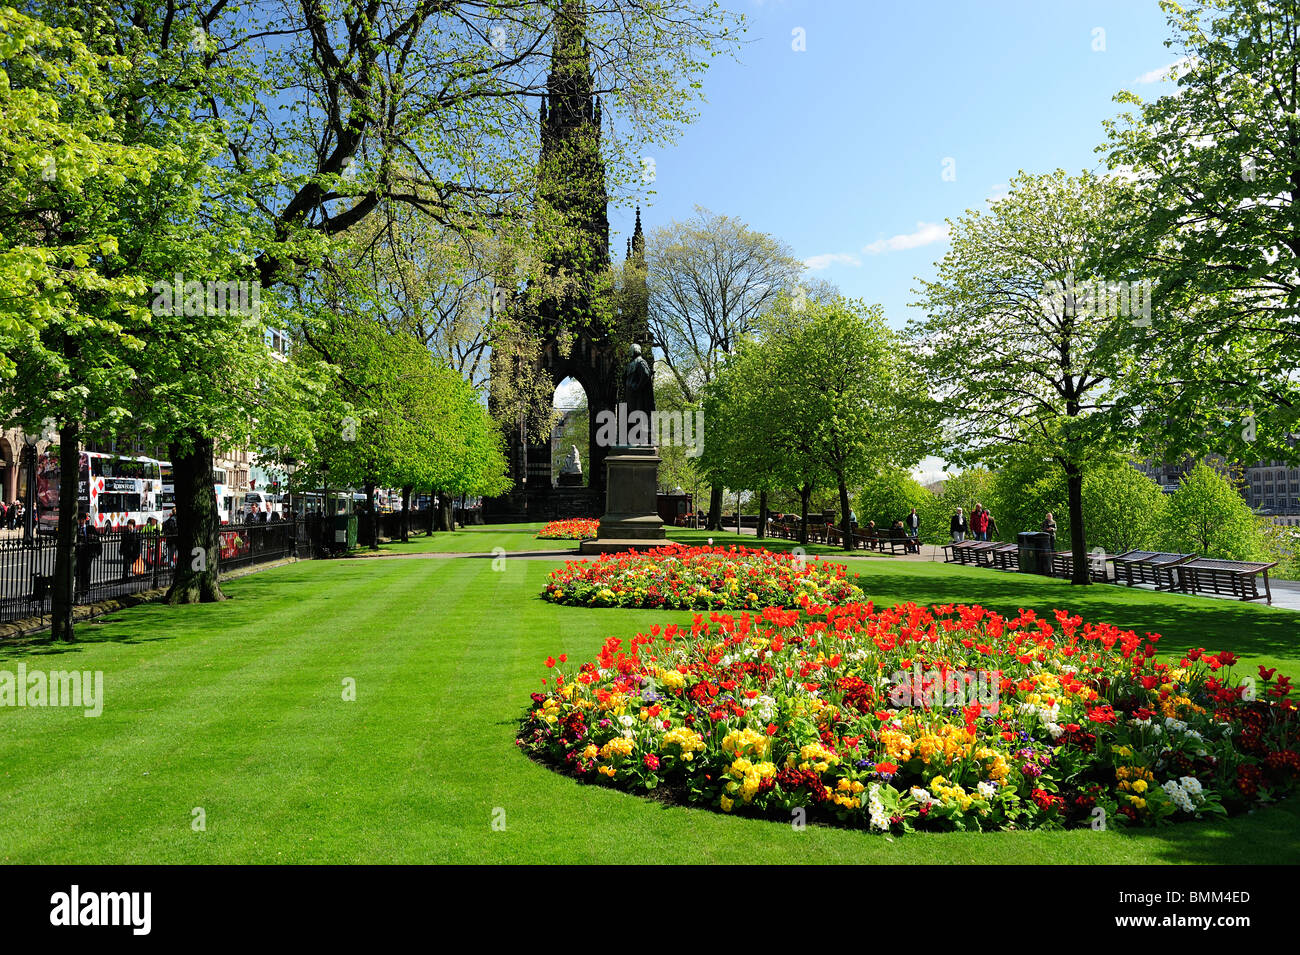 Spring flowers in Princes Street Gardens with Scott Monument in background, Edinburgh, Scotland - Stock Image